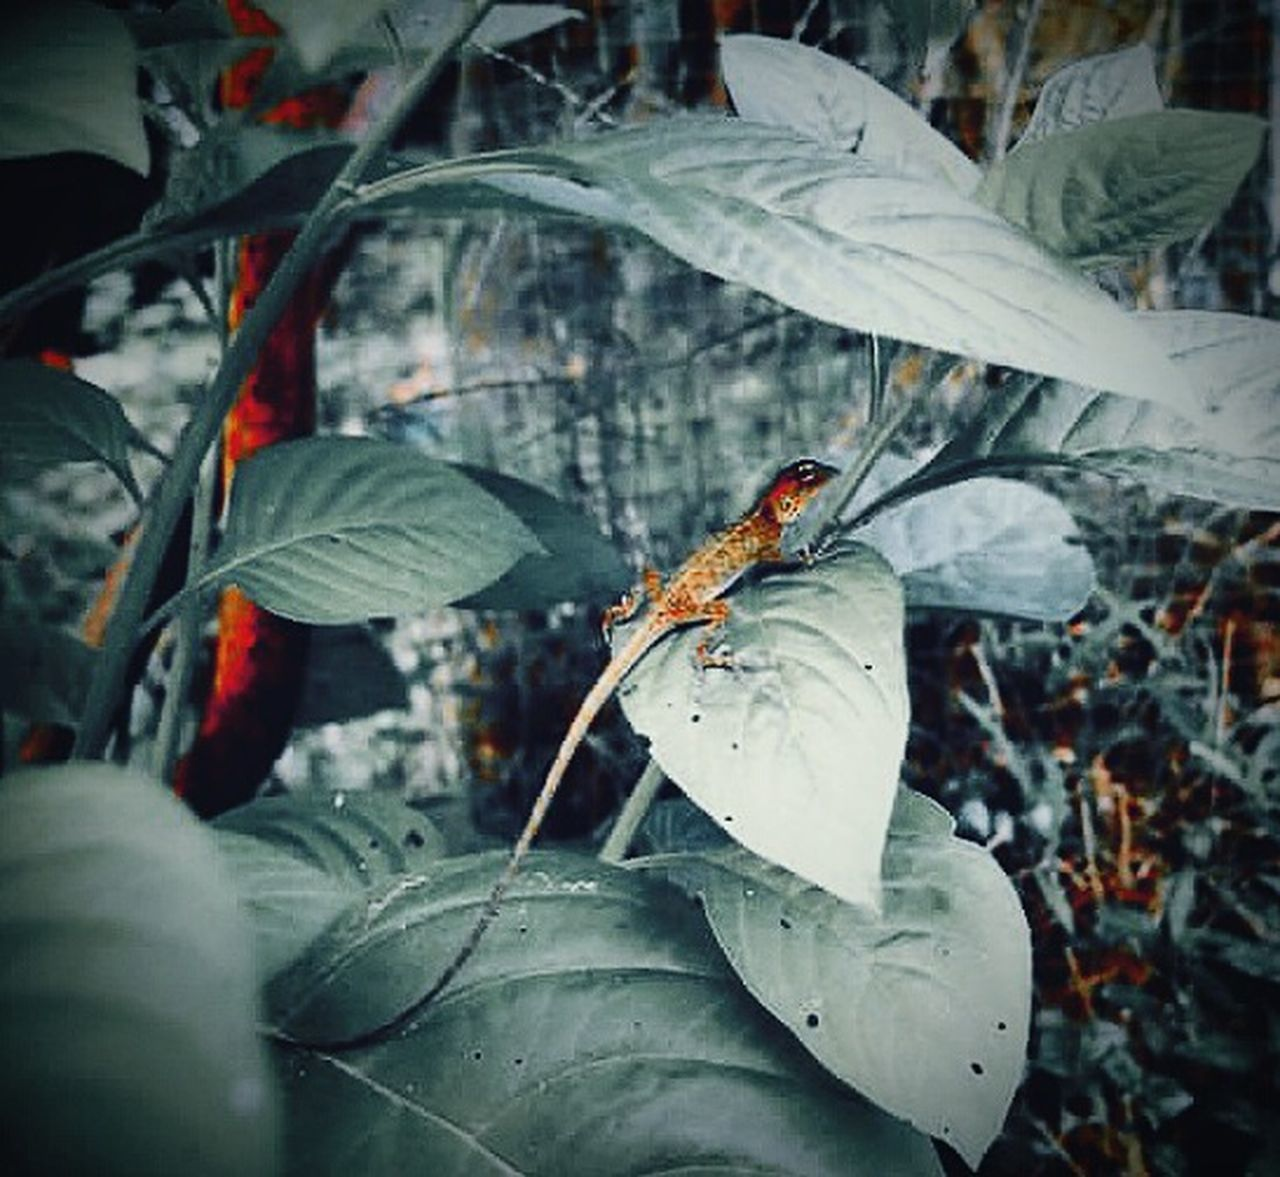 Hide and seek Reptile Gecko Lizard Hiding Leaves Plants And Garden Mobile Photography Fresh On Eyeem  The Week Of Eyeem My Capture  Hello World EyeEm Nature Lover The Beauty Of Nature EyeEm Malaysia Colour Of Nature Garden Photography Green Color Eyeem Garden Showcase June